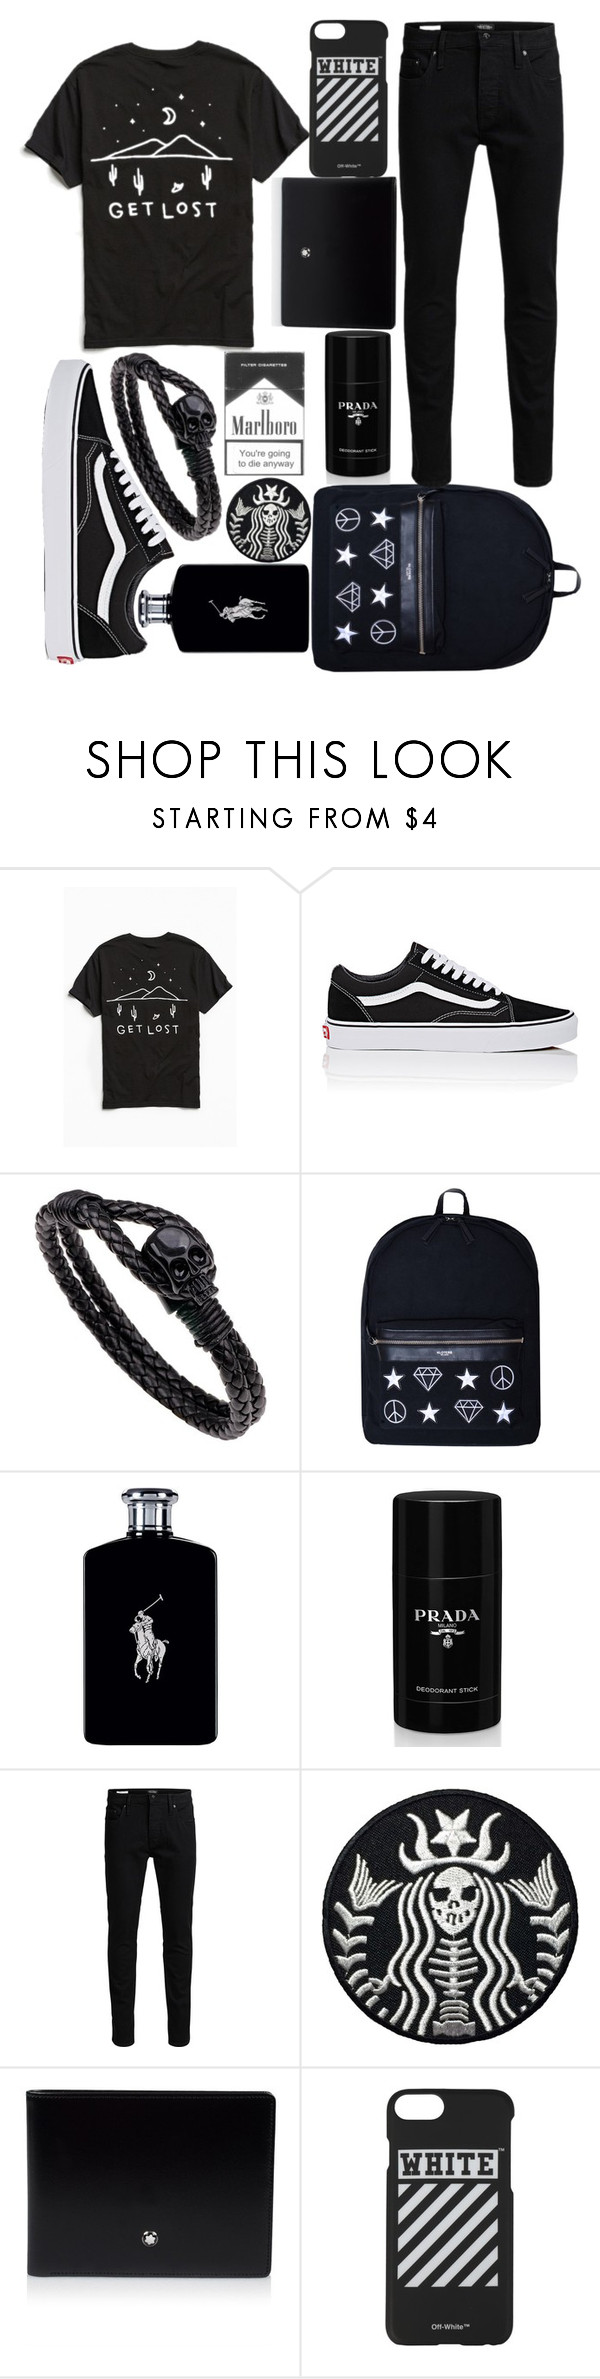 """Untitled #310"" by terminally-pretty-hippy on Polyvore featuring MNKR, Vans, Kloters Milano, Ralph Lauren, Prada, Jack & Jones, Montblanc, Off-White, men's fashion and menswear"